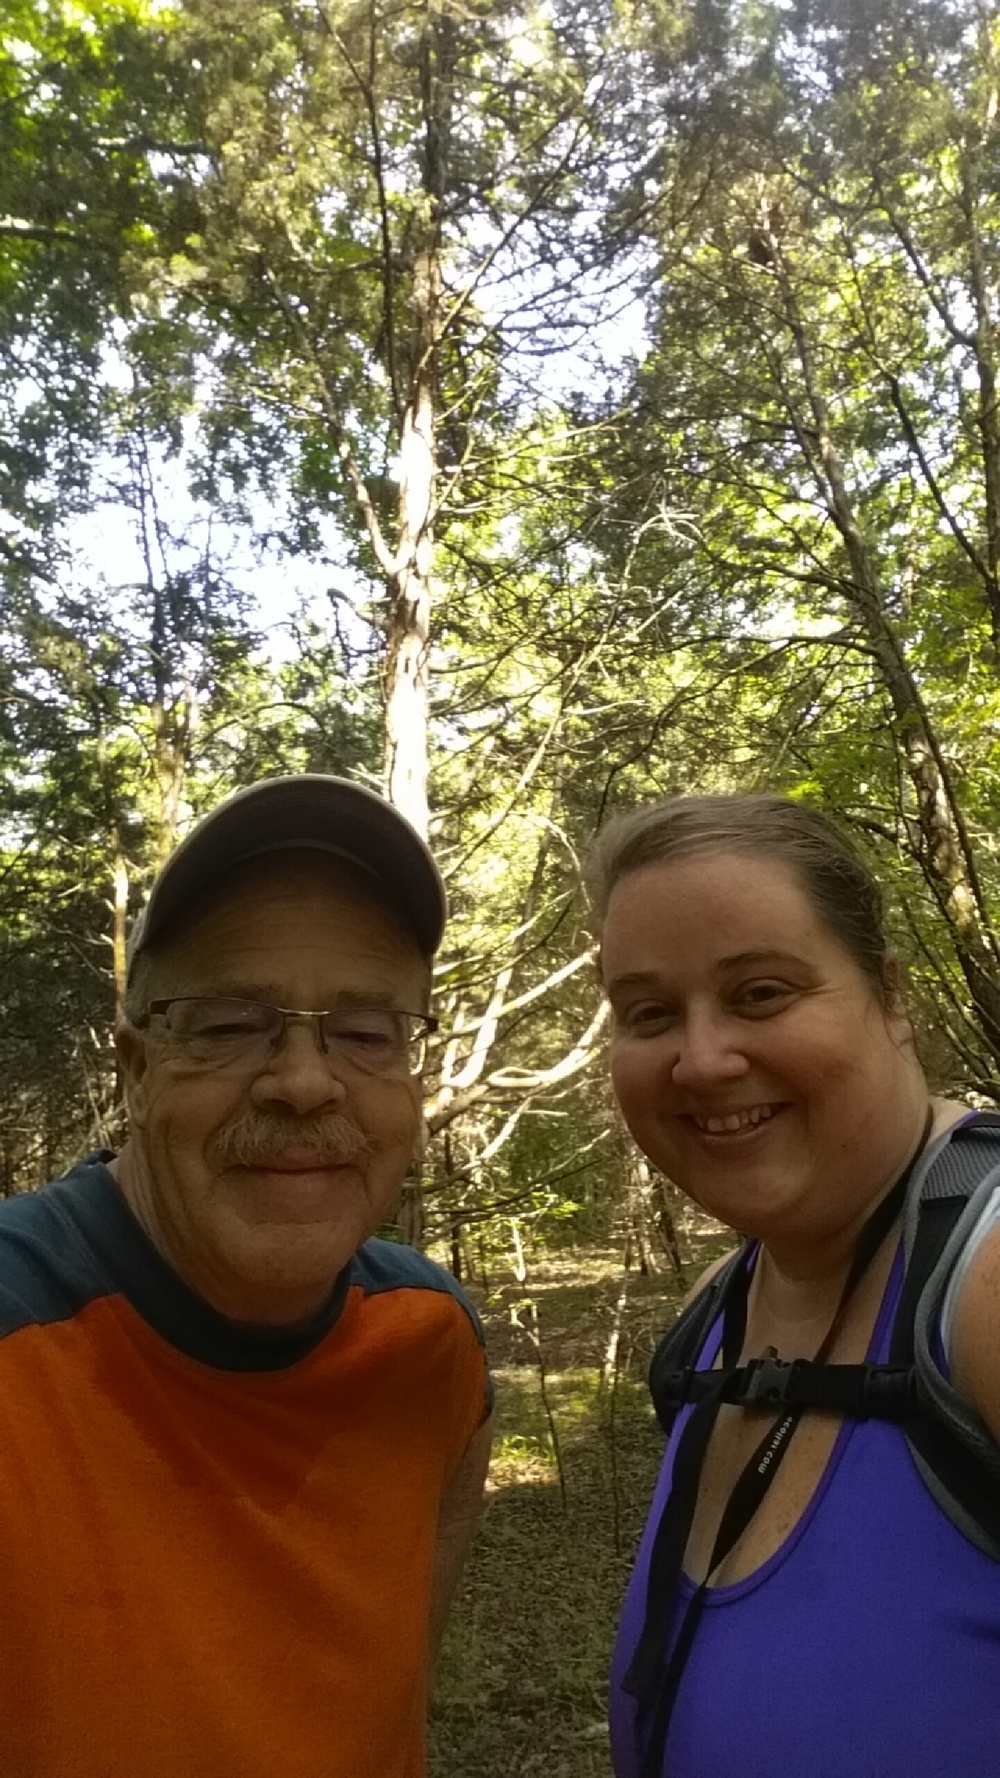 Hiking with Dad on Fathers day, we make a great team.